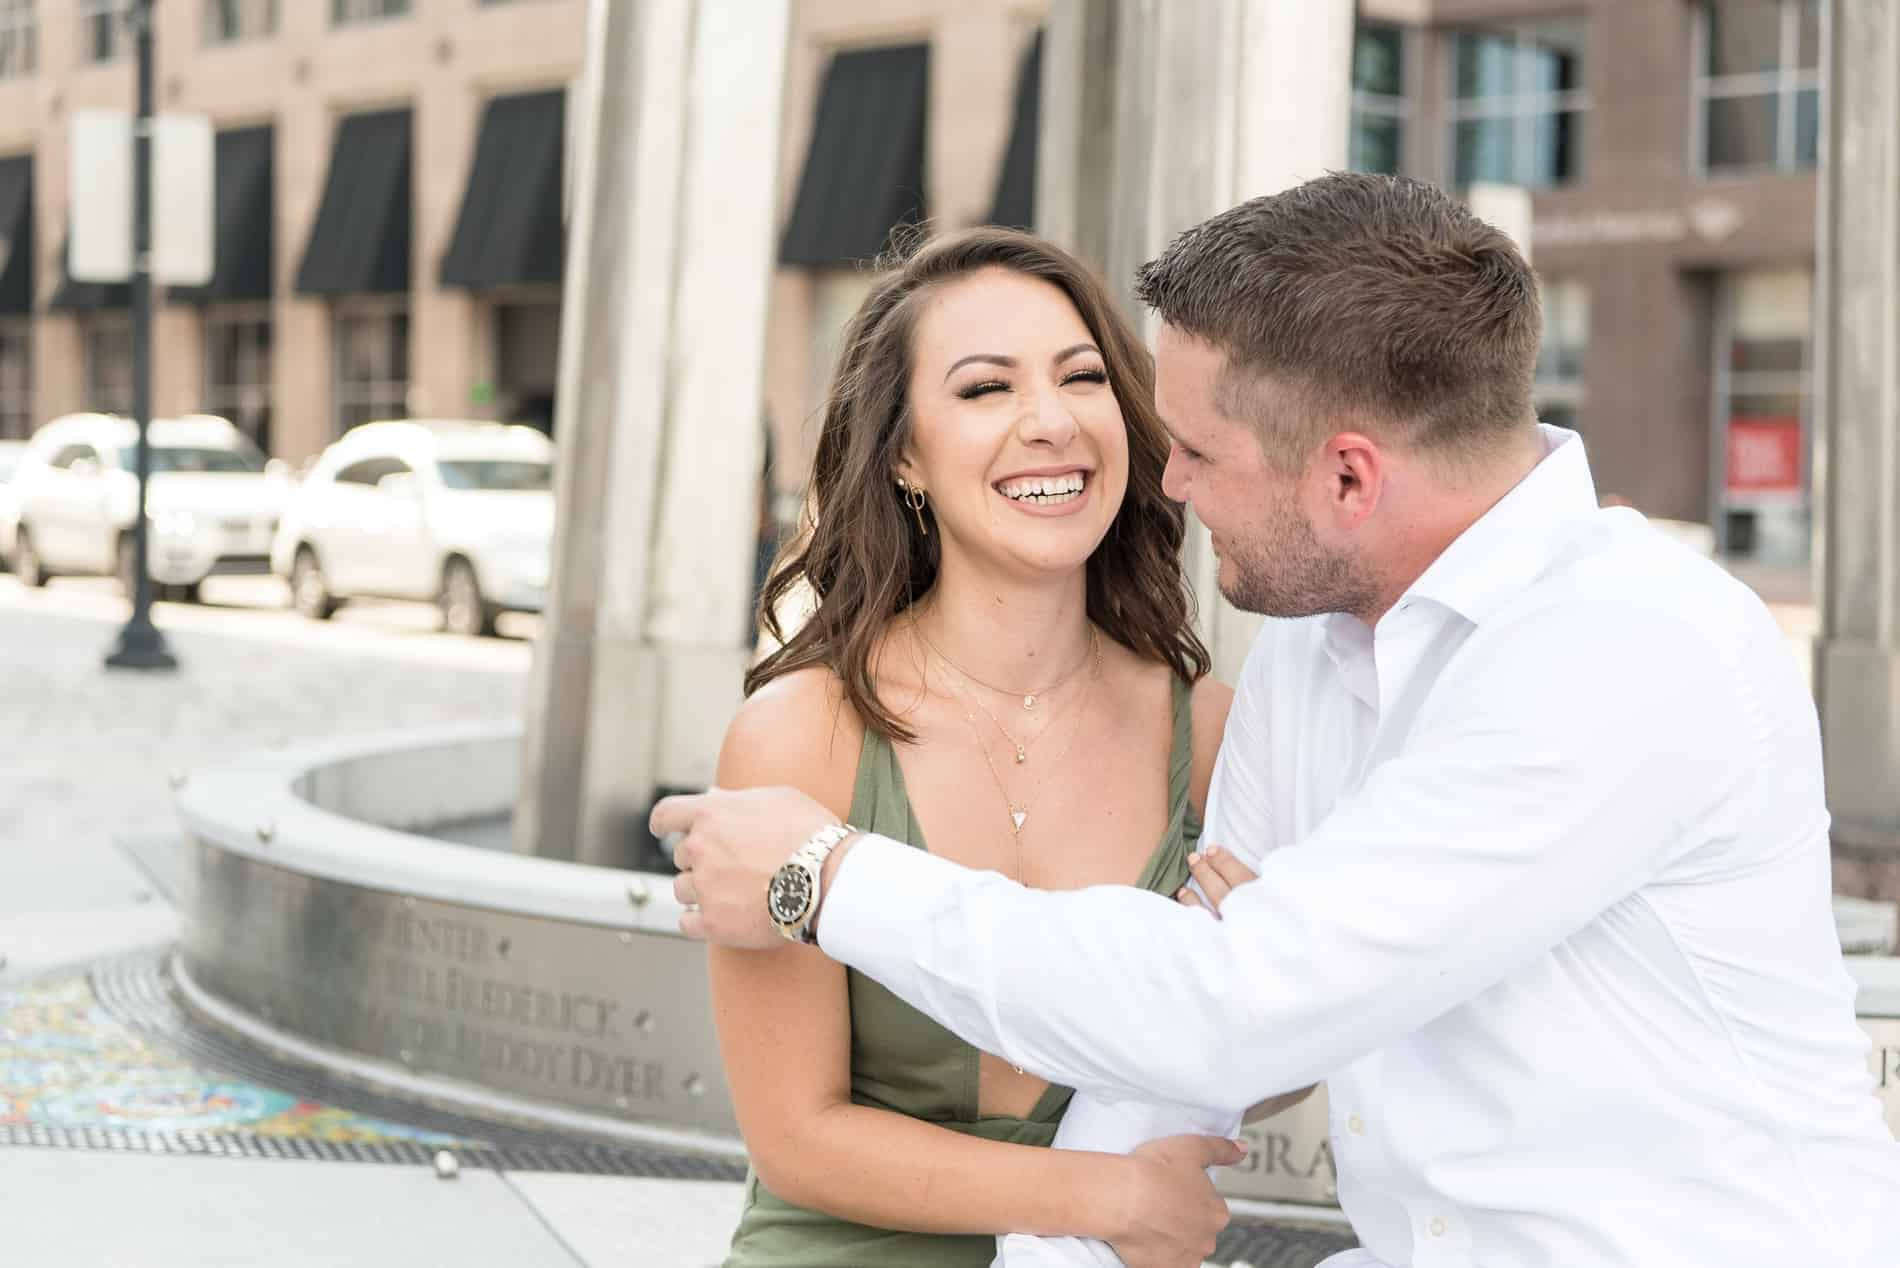 He makes her smile as they enjoy Downtown Orlando